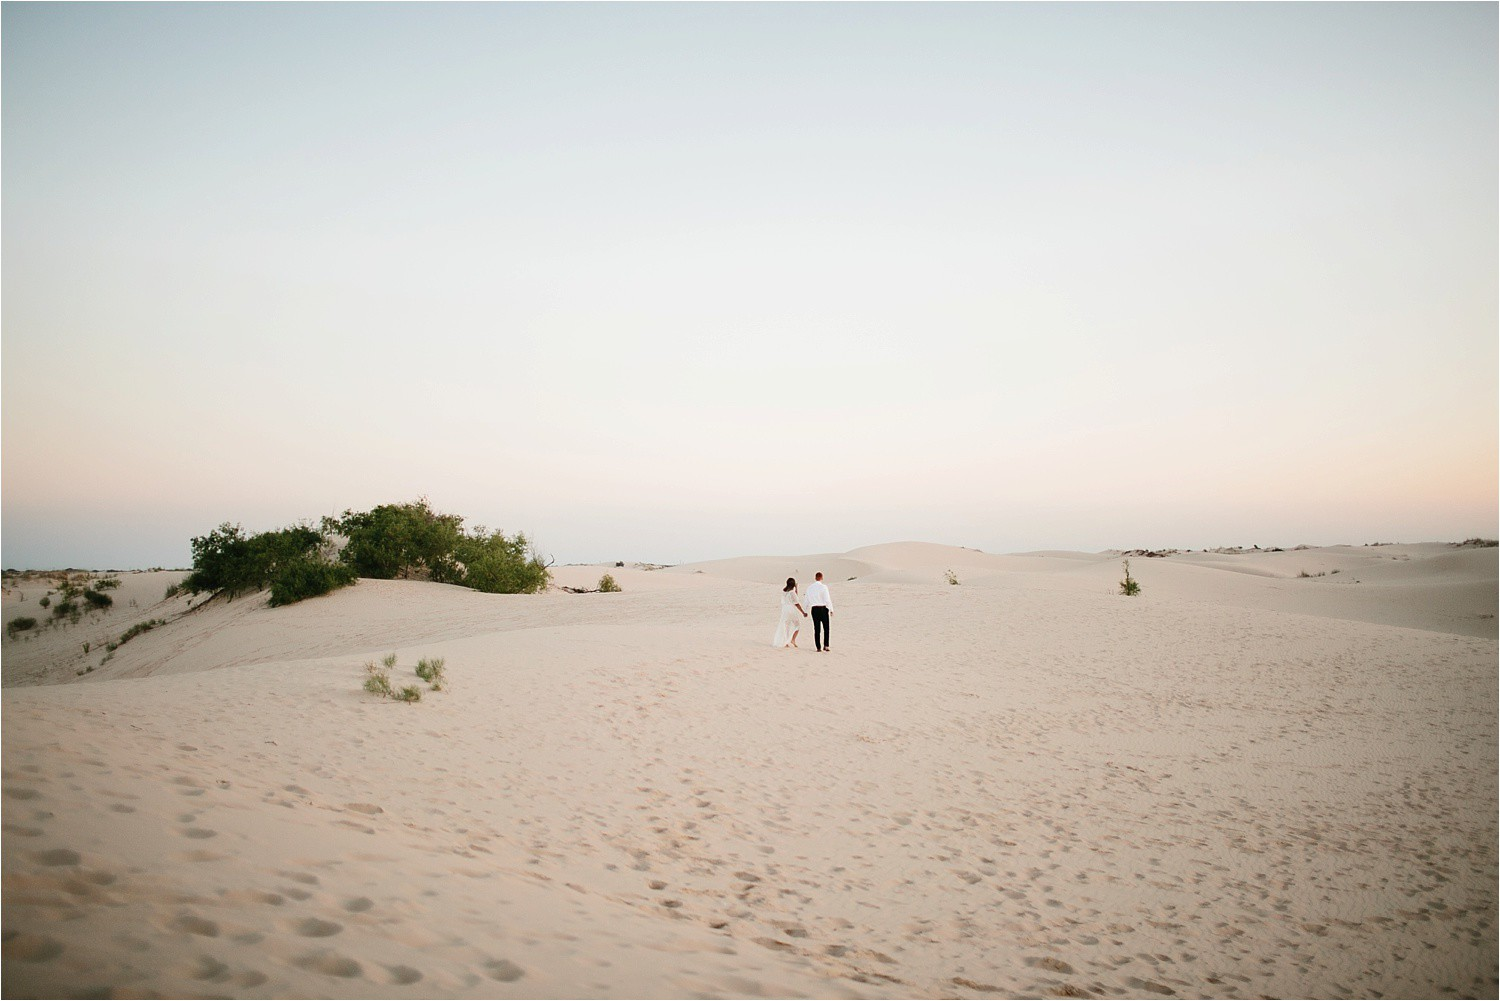 Lauren + Jacob __ a monahans sand dunes engagement session at sunrise by North Texas Wedding Photographer, Rachel Meagan Photography __ 02